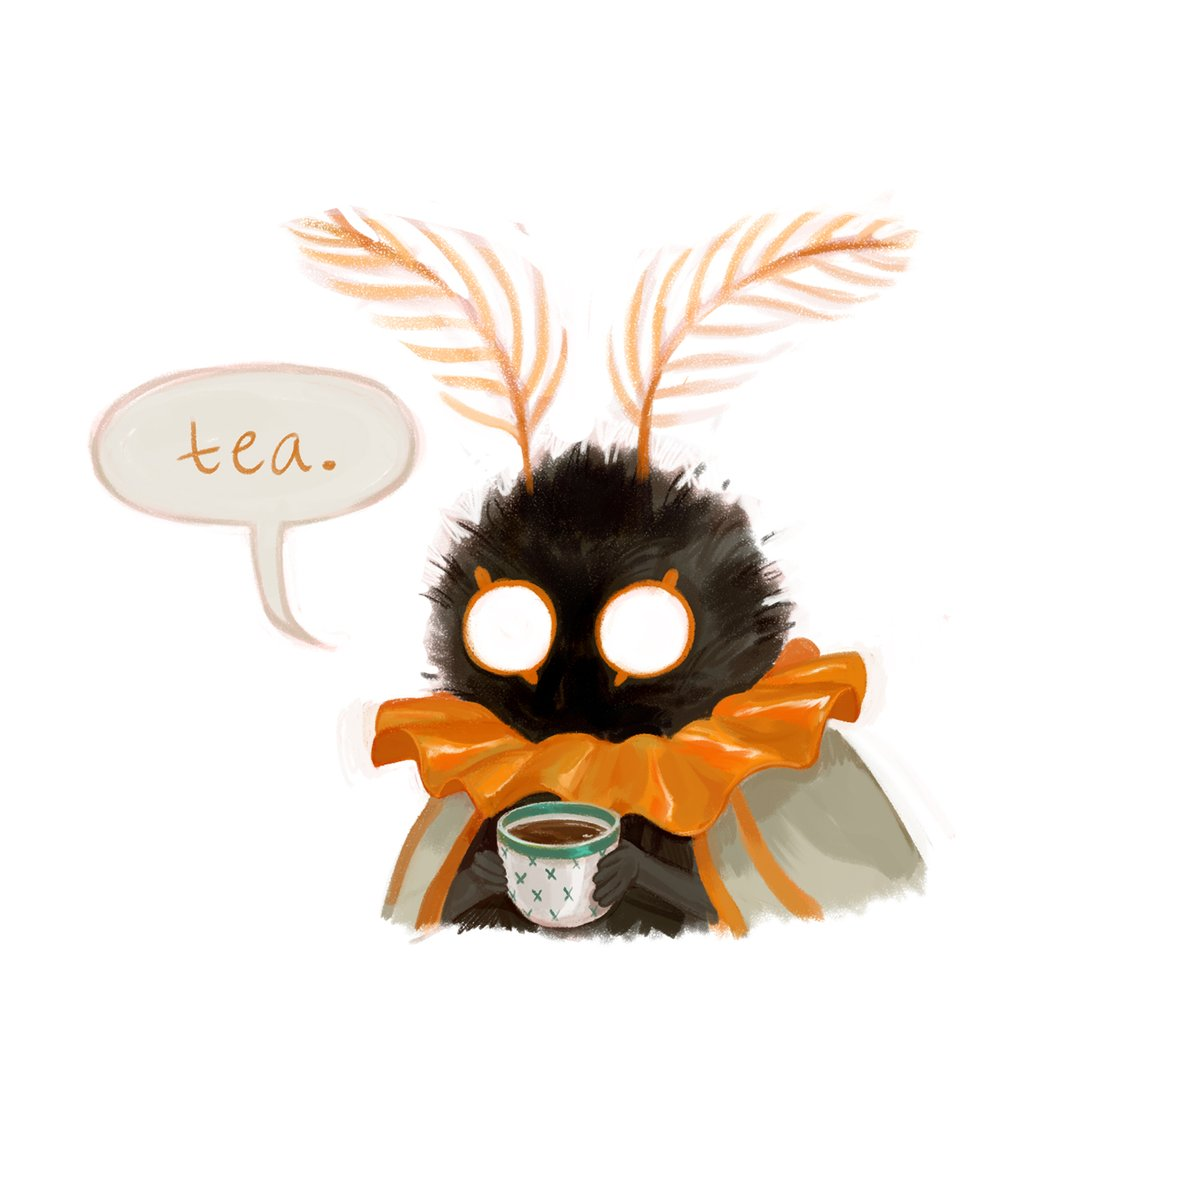 RT @meggellison: Needed a good story to distract from ~things~ So I present to you: Mothman's little brother https://t.co/nfdSNoPdb4